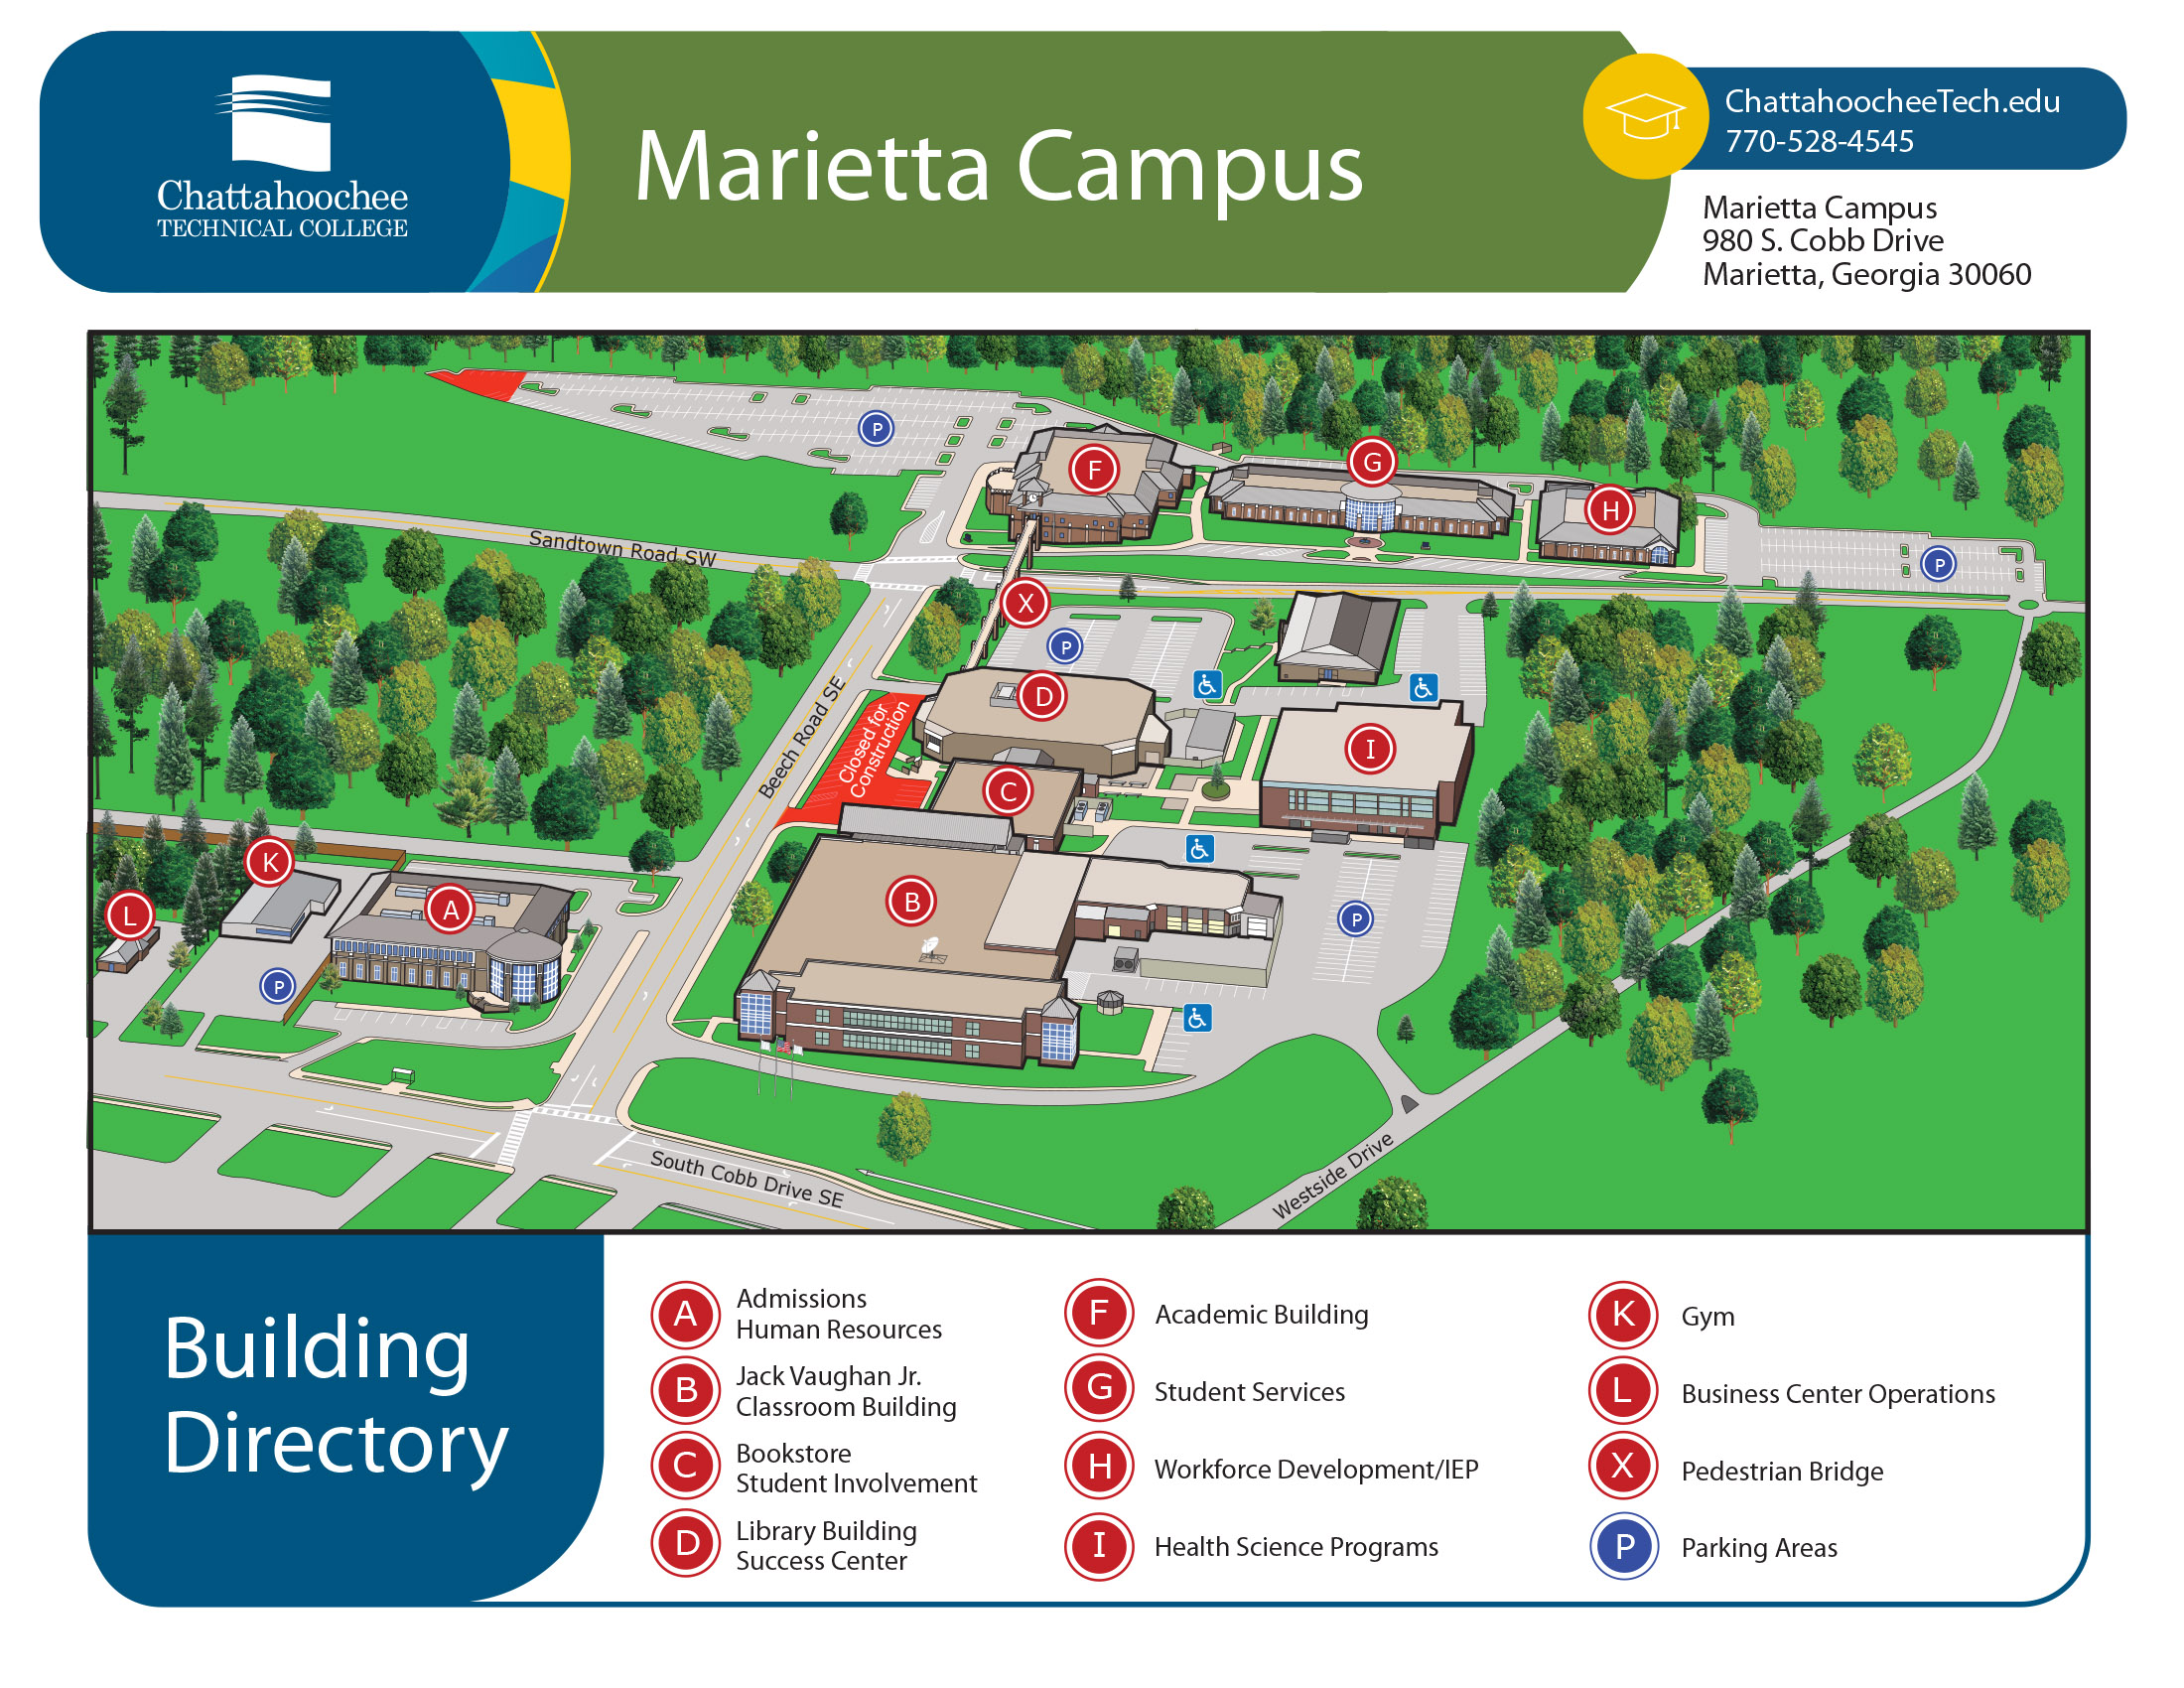 chattahoochee tech marietta campus map Campus Locations Chattahoochee Technical College chattahoochee tech marietta campus map